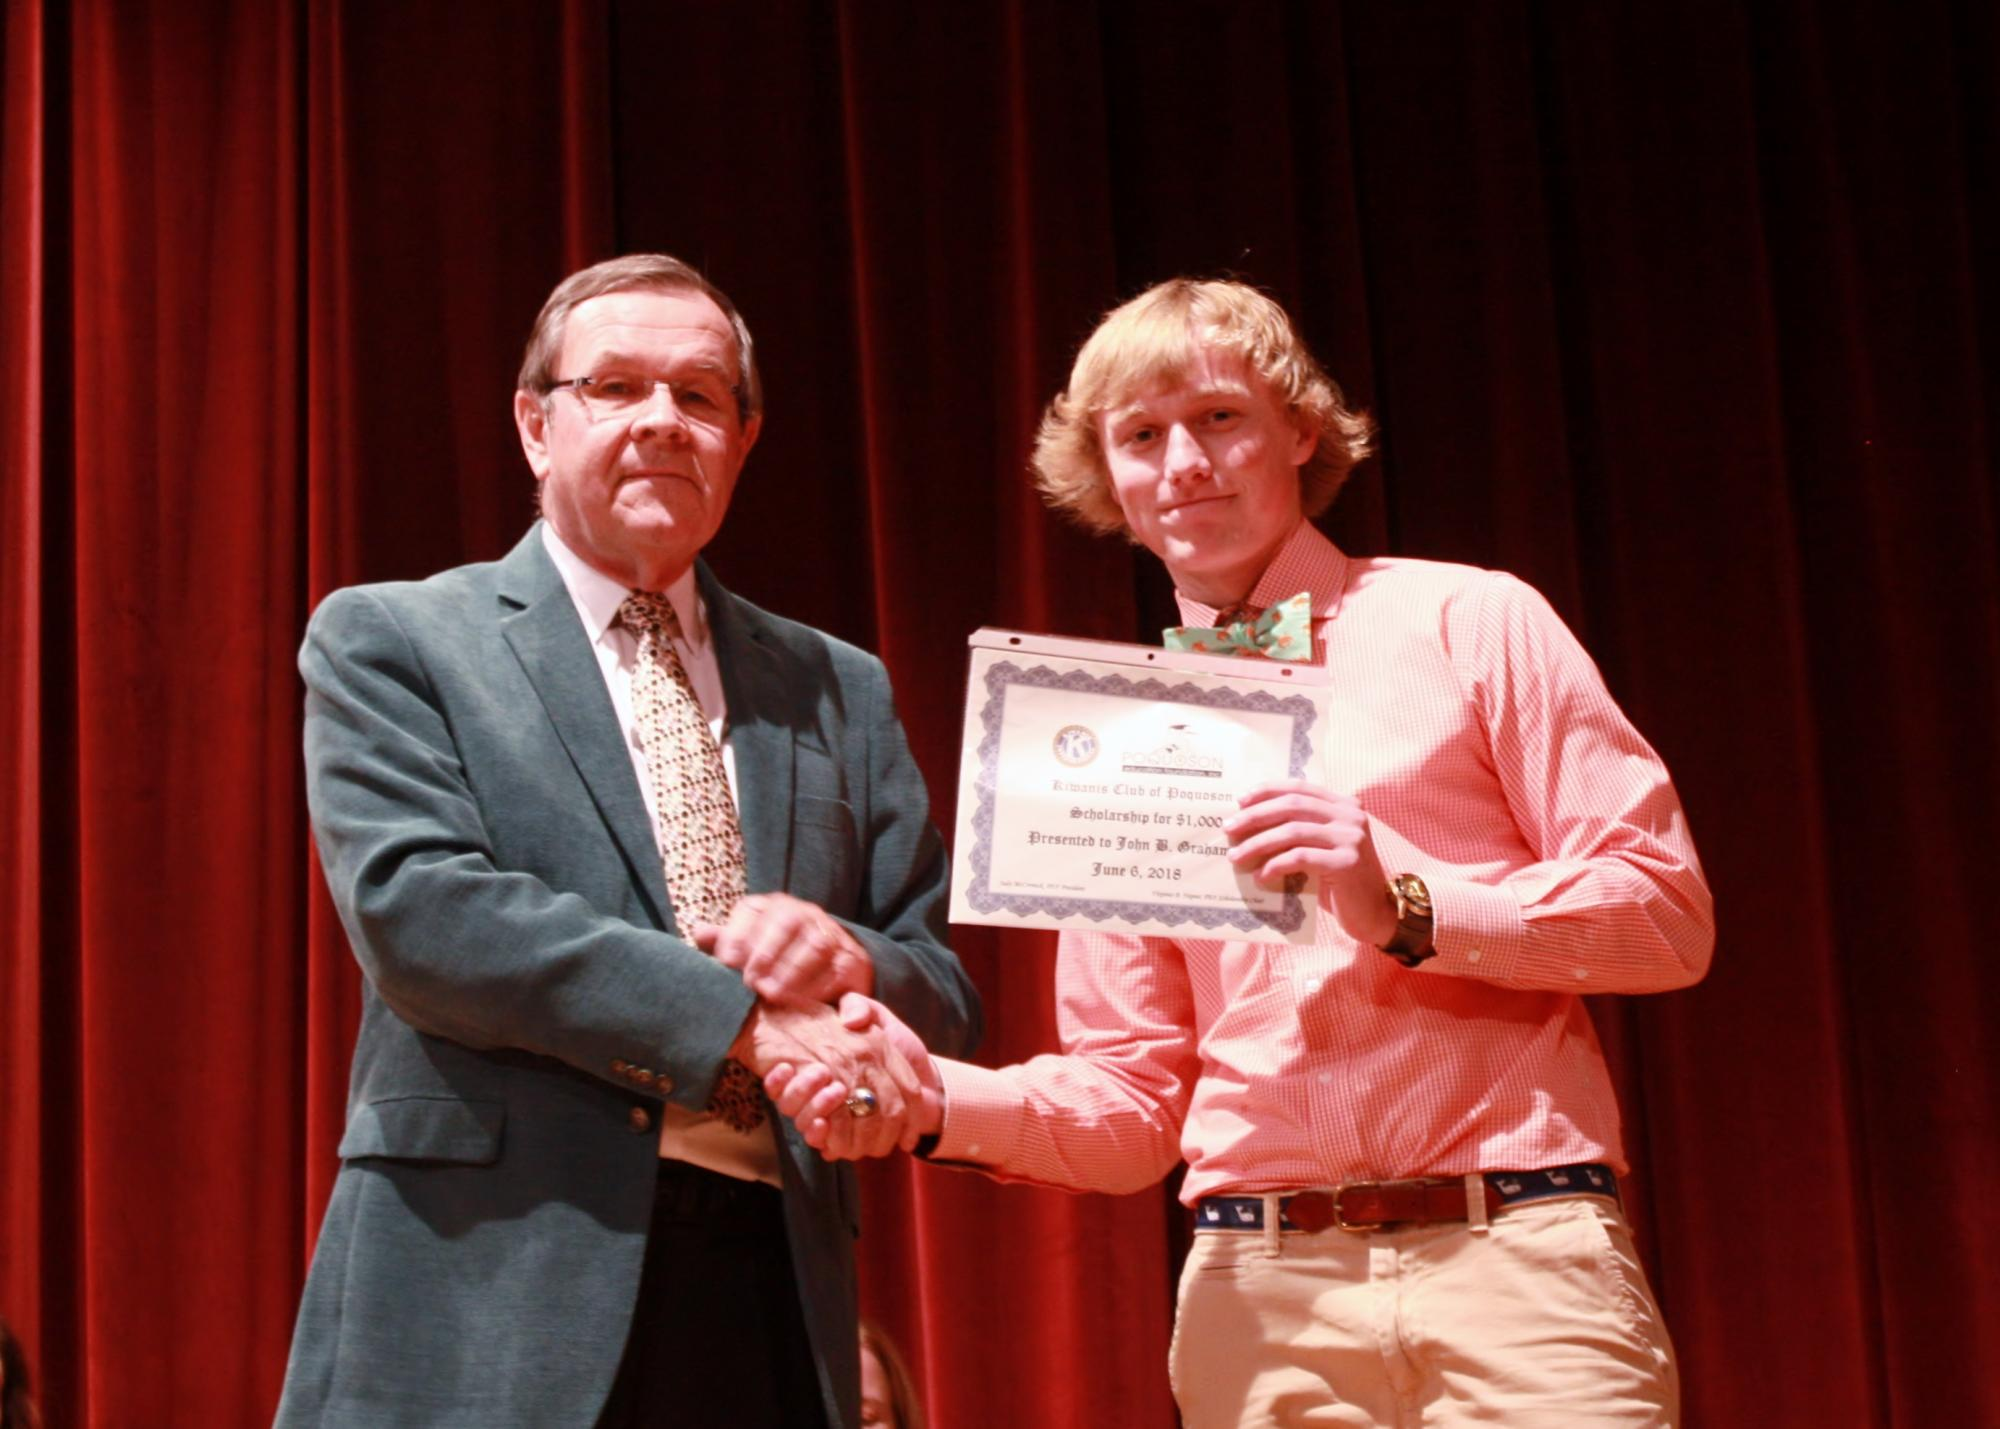 Jack Graham--Kiwanis Club of Poquoson Scholarship